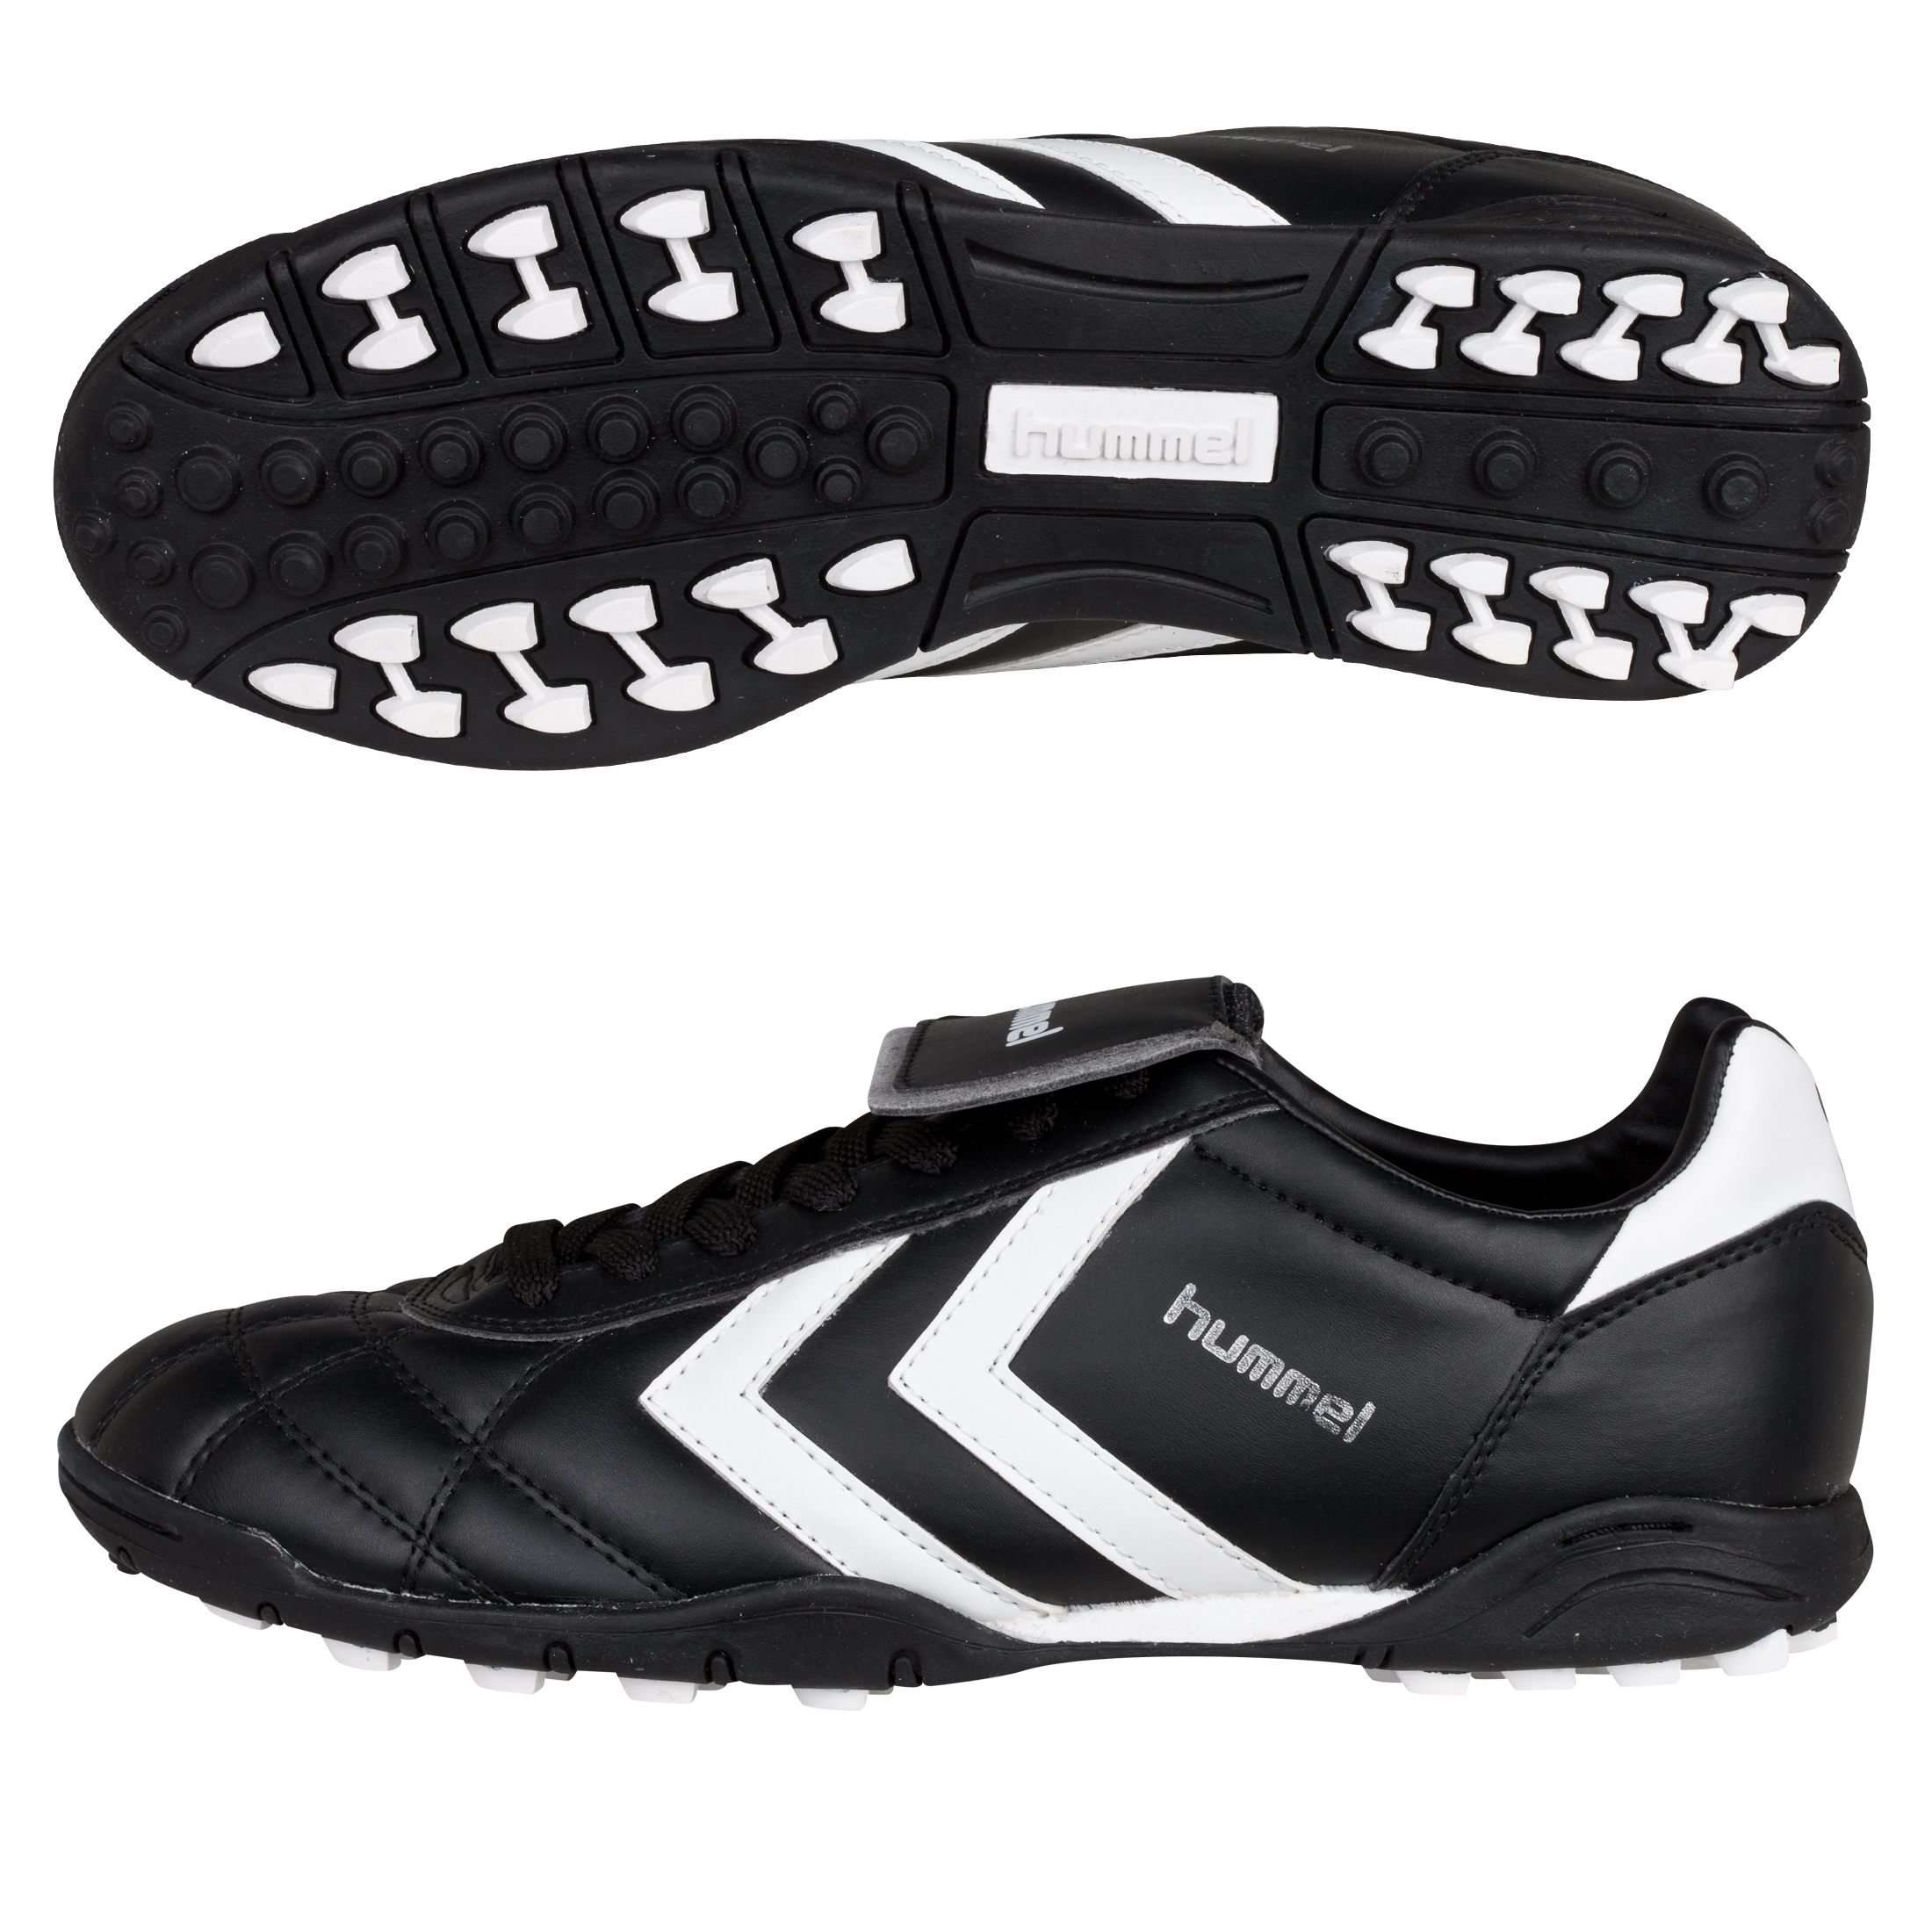 Hummel Old School Star Astro Turf Trainers - Black/White